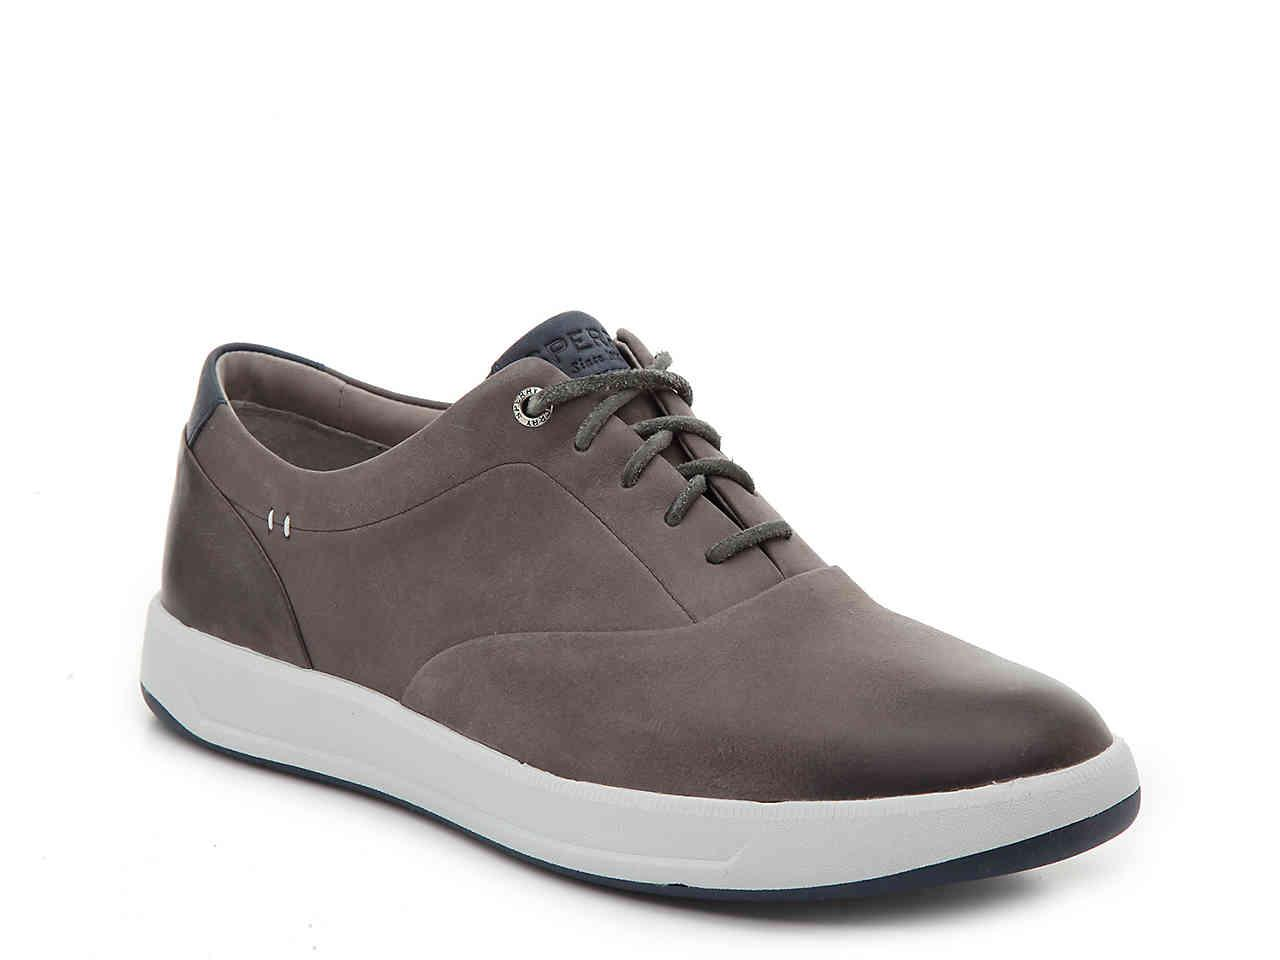 5c86d56f52a0 Lyst - Sperry Top-Sider Gold Cup Richfield Cvo Sneakers in Gray for ...